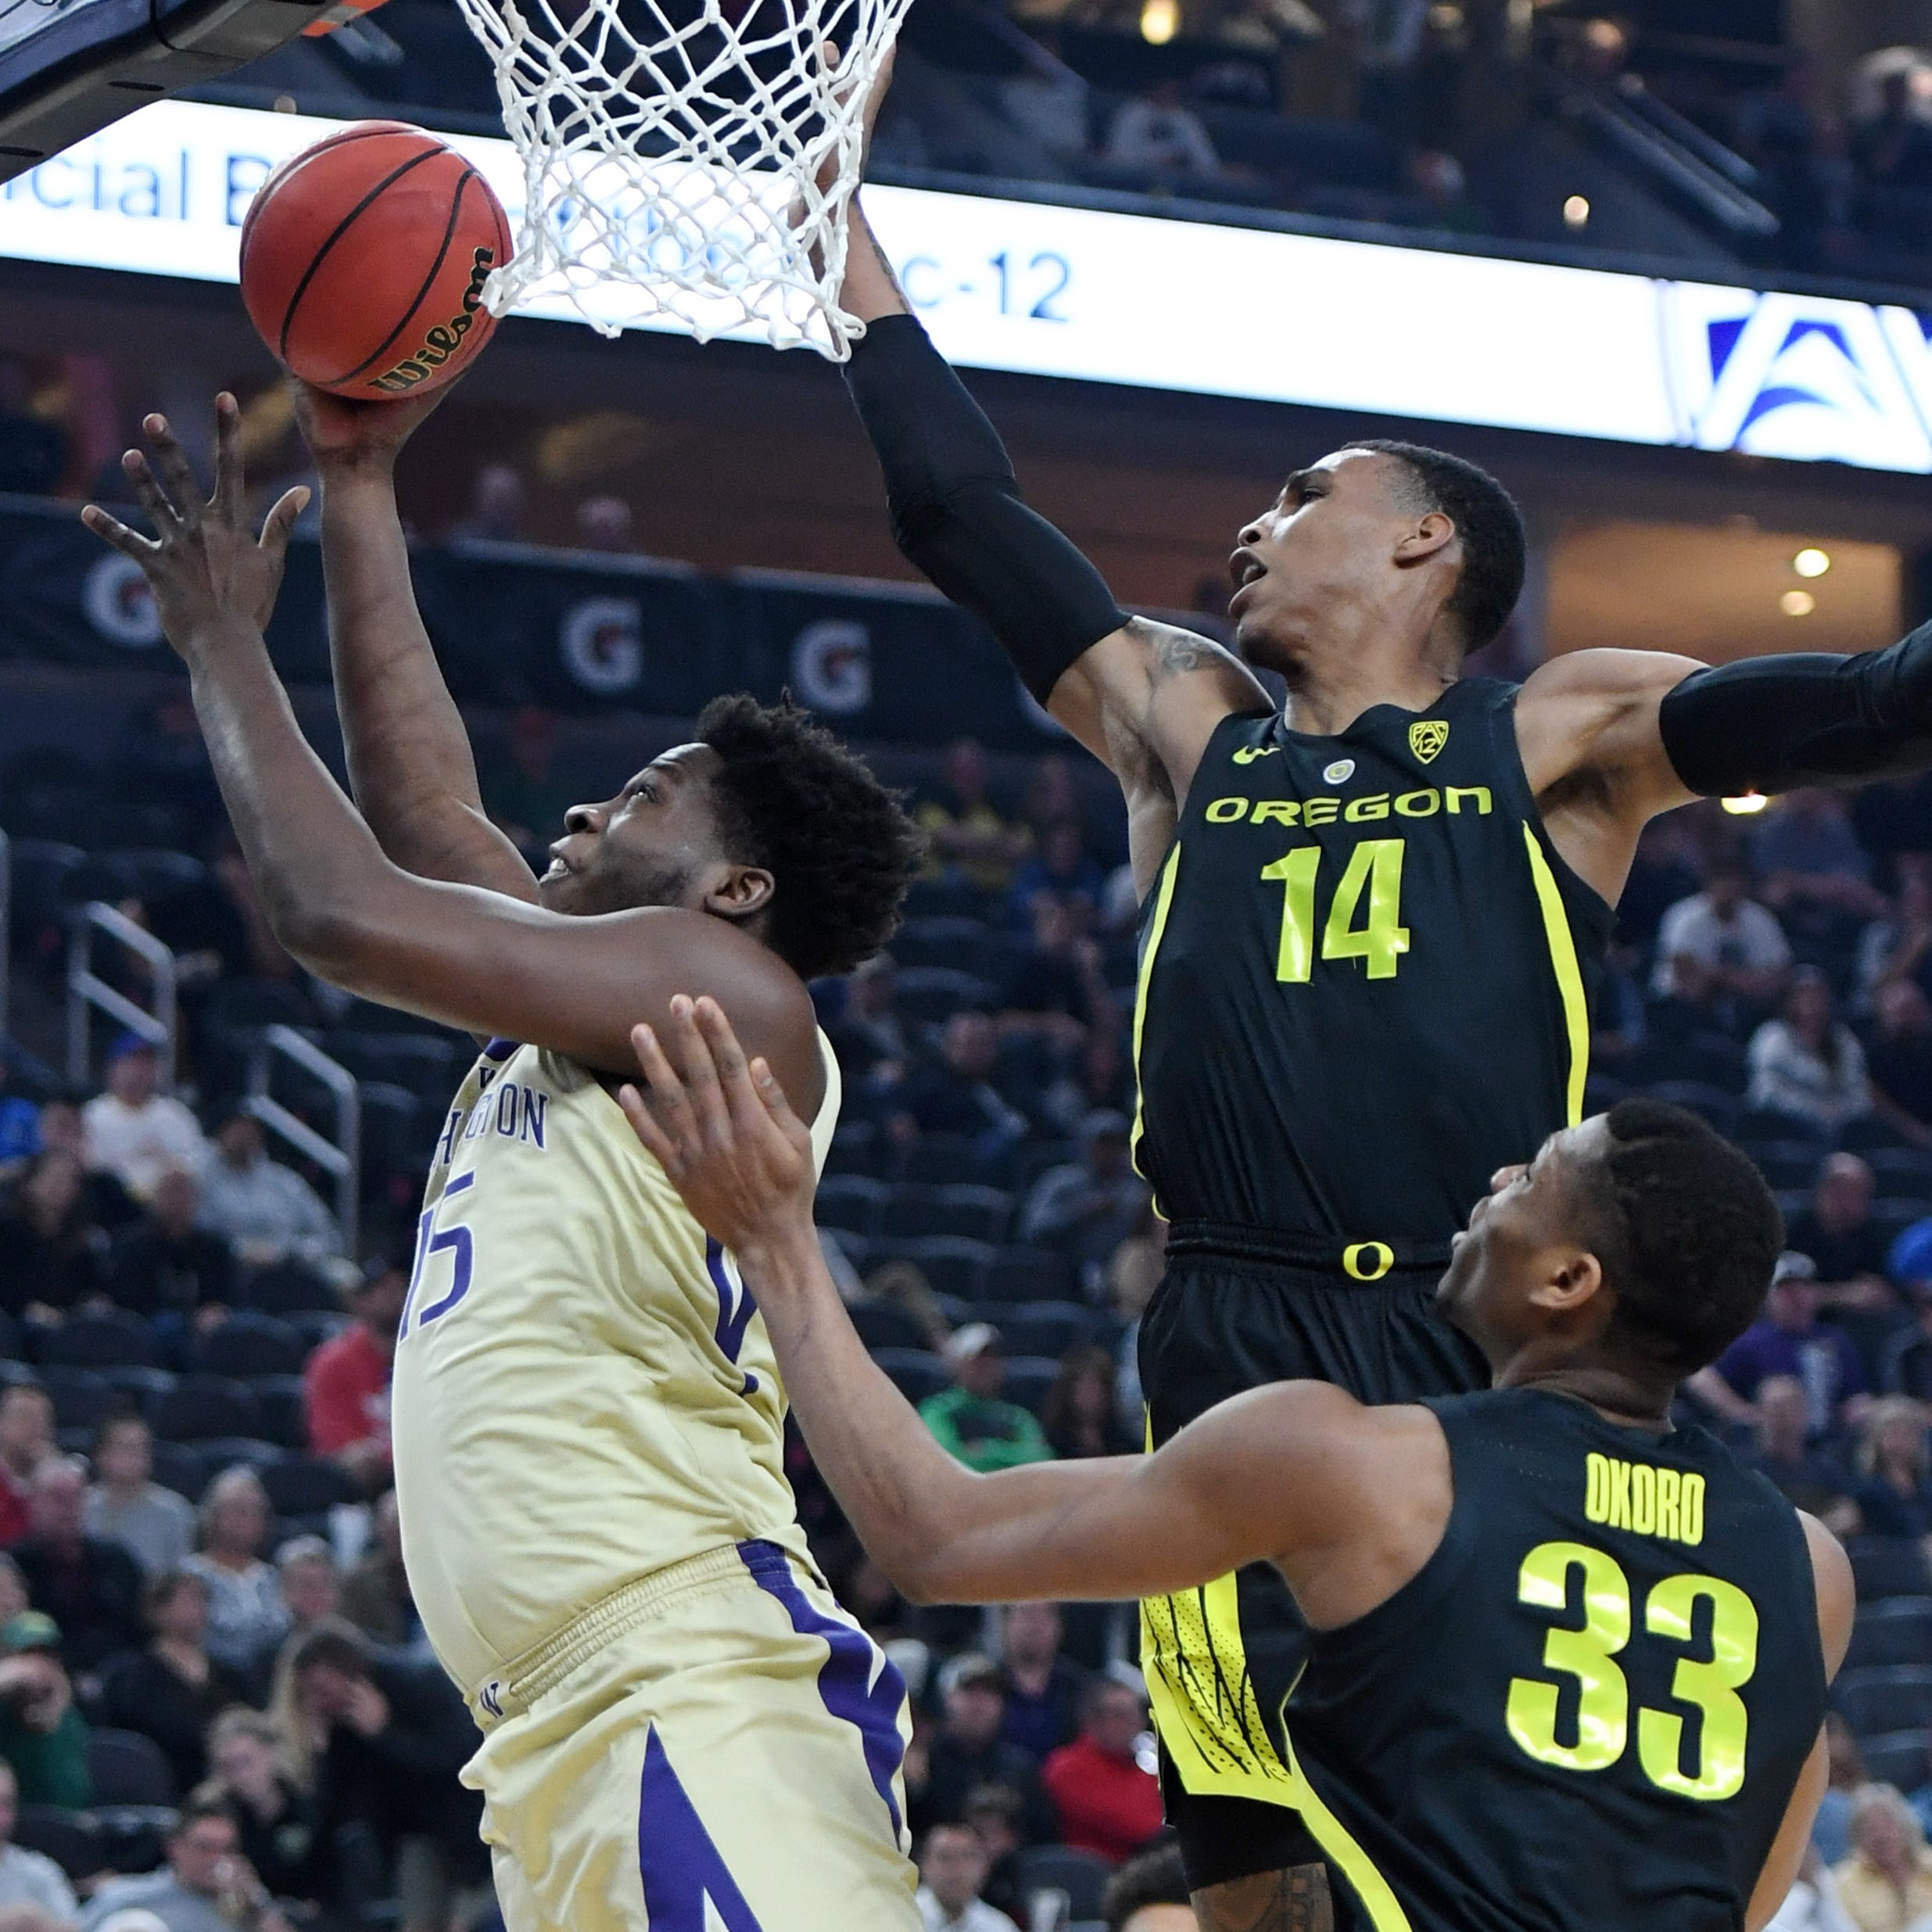 Can UW, which struggled to score in the Big Ten tournament, solve Oregon's defense?